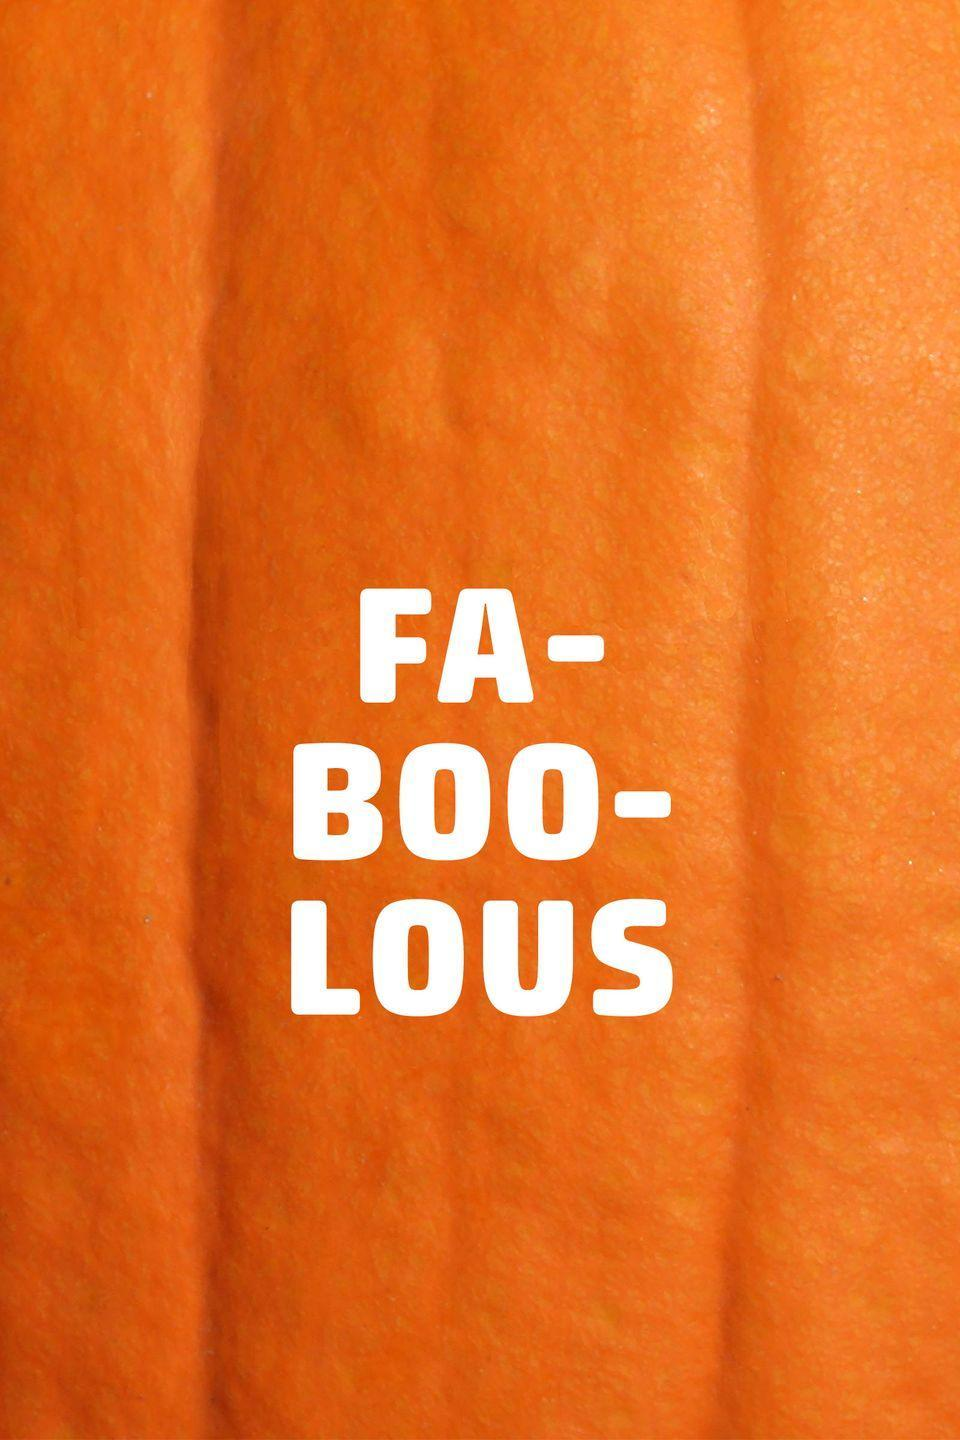 <p>What do you call a stylish ghost? Fa-boo-lous!</p>